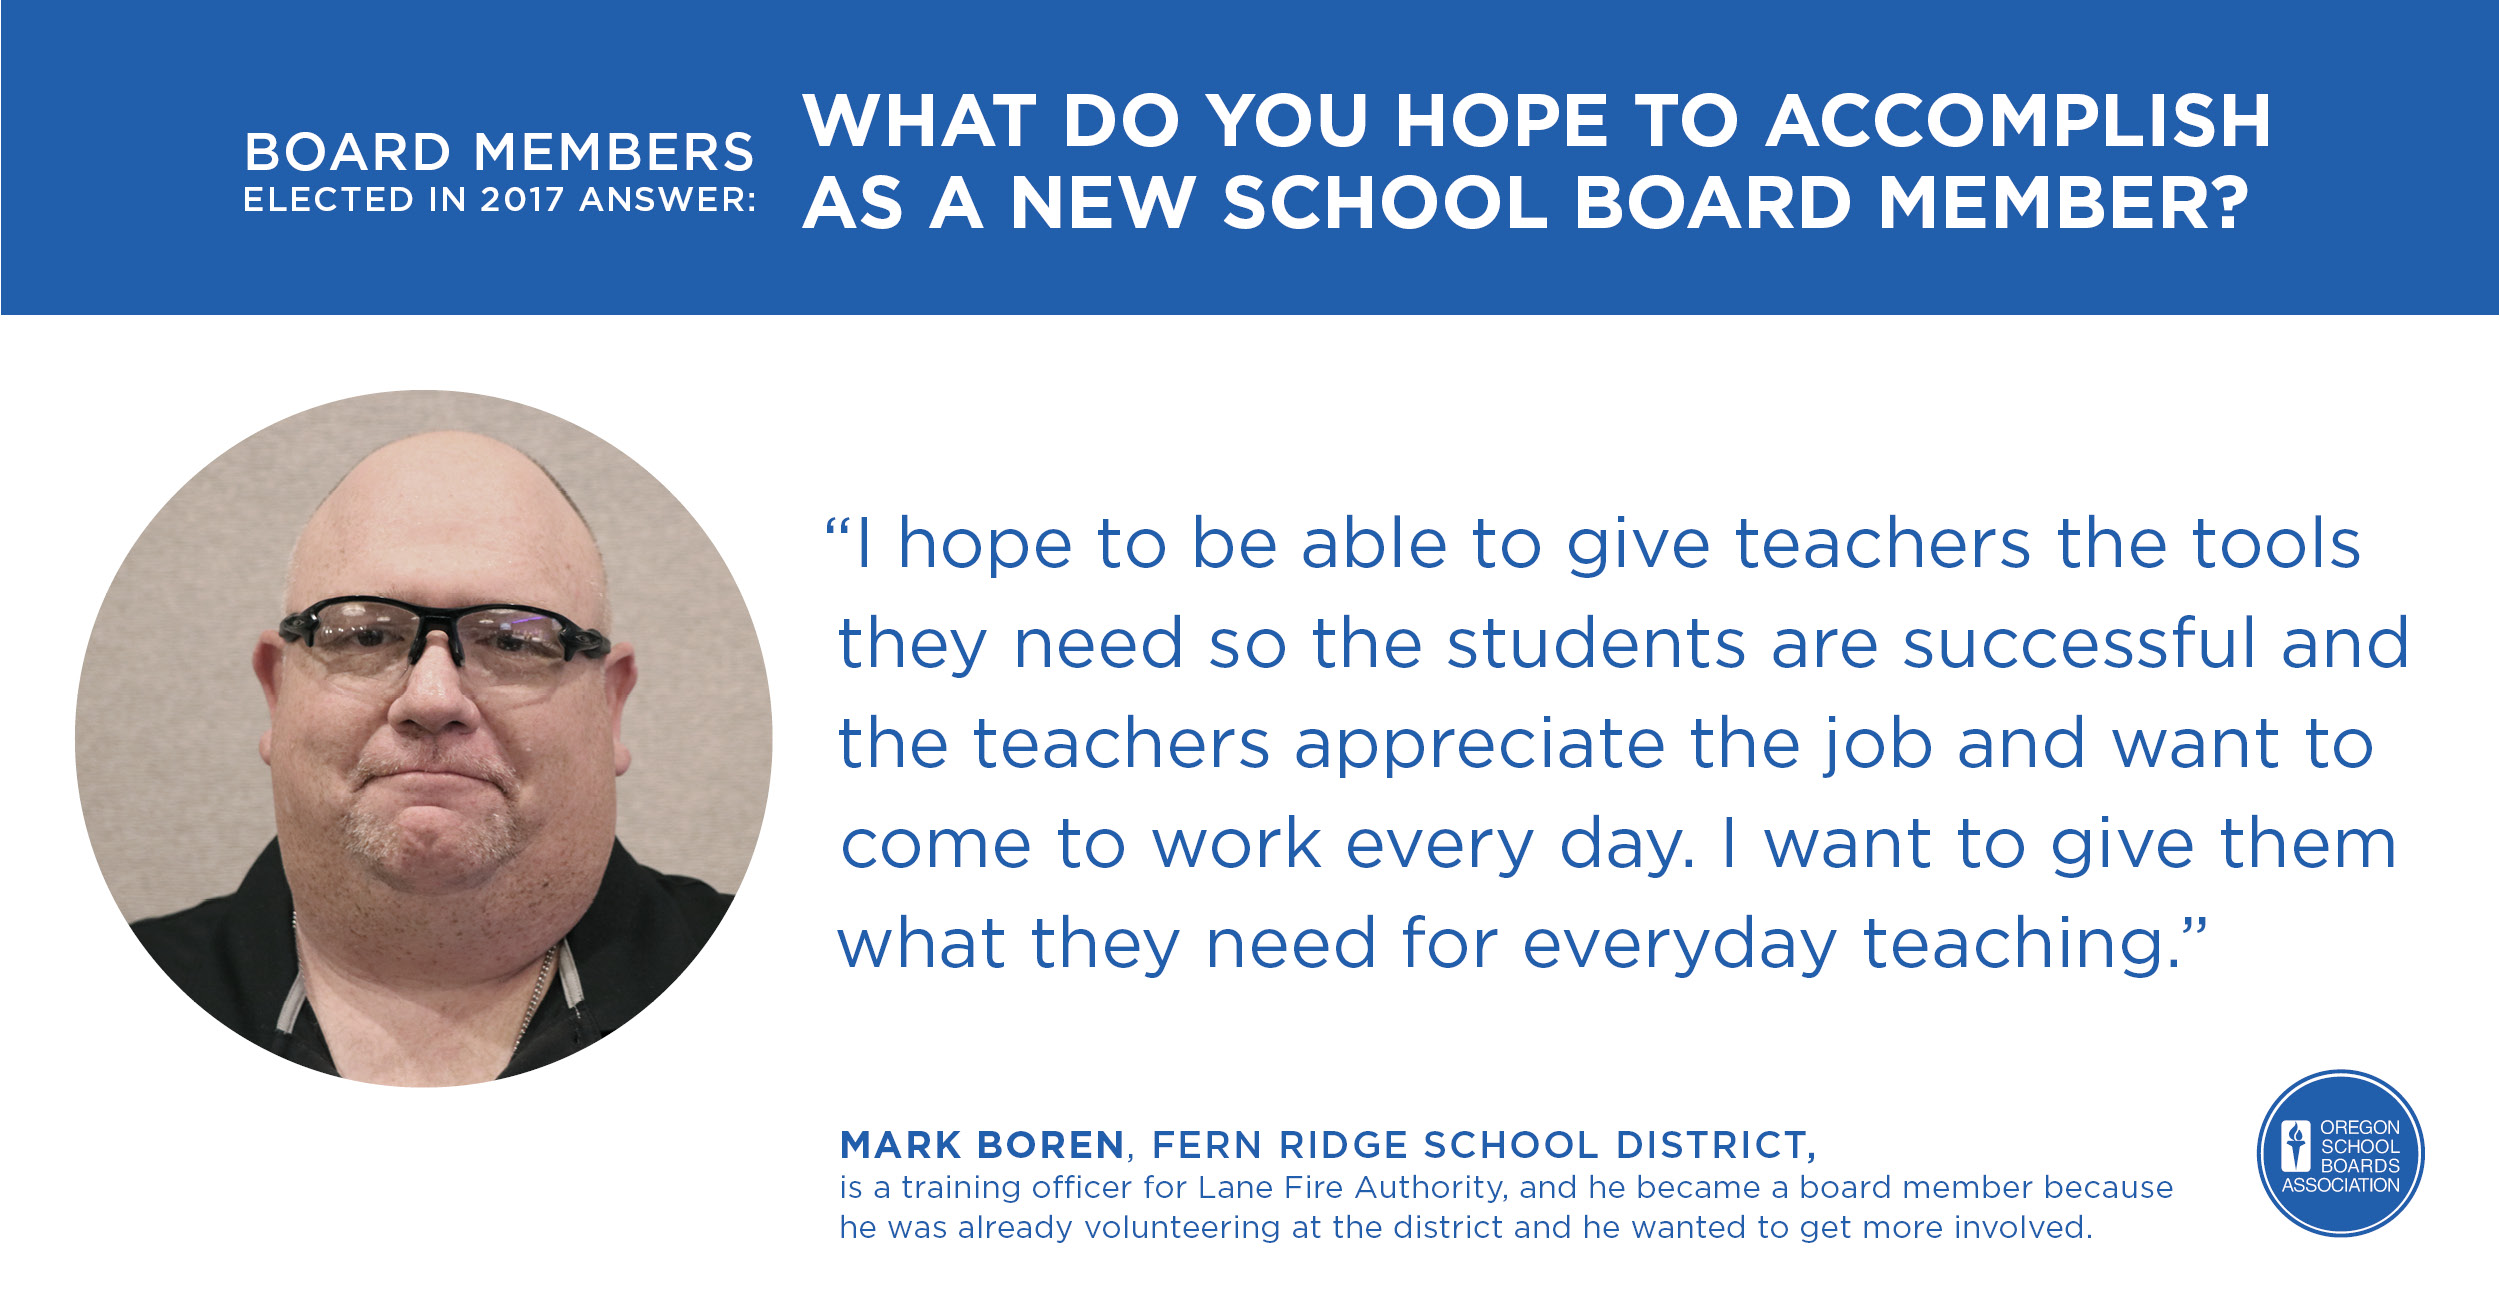 Quote and photo of Mark Boren